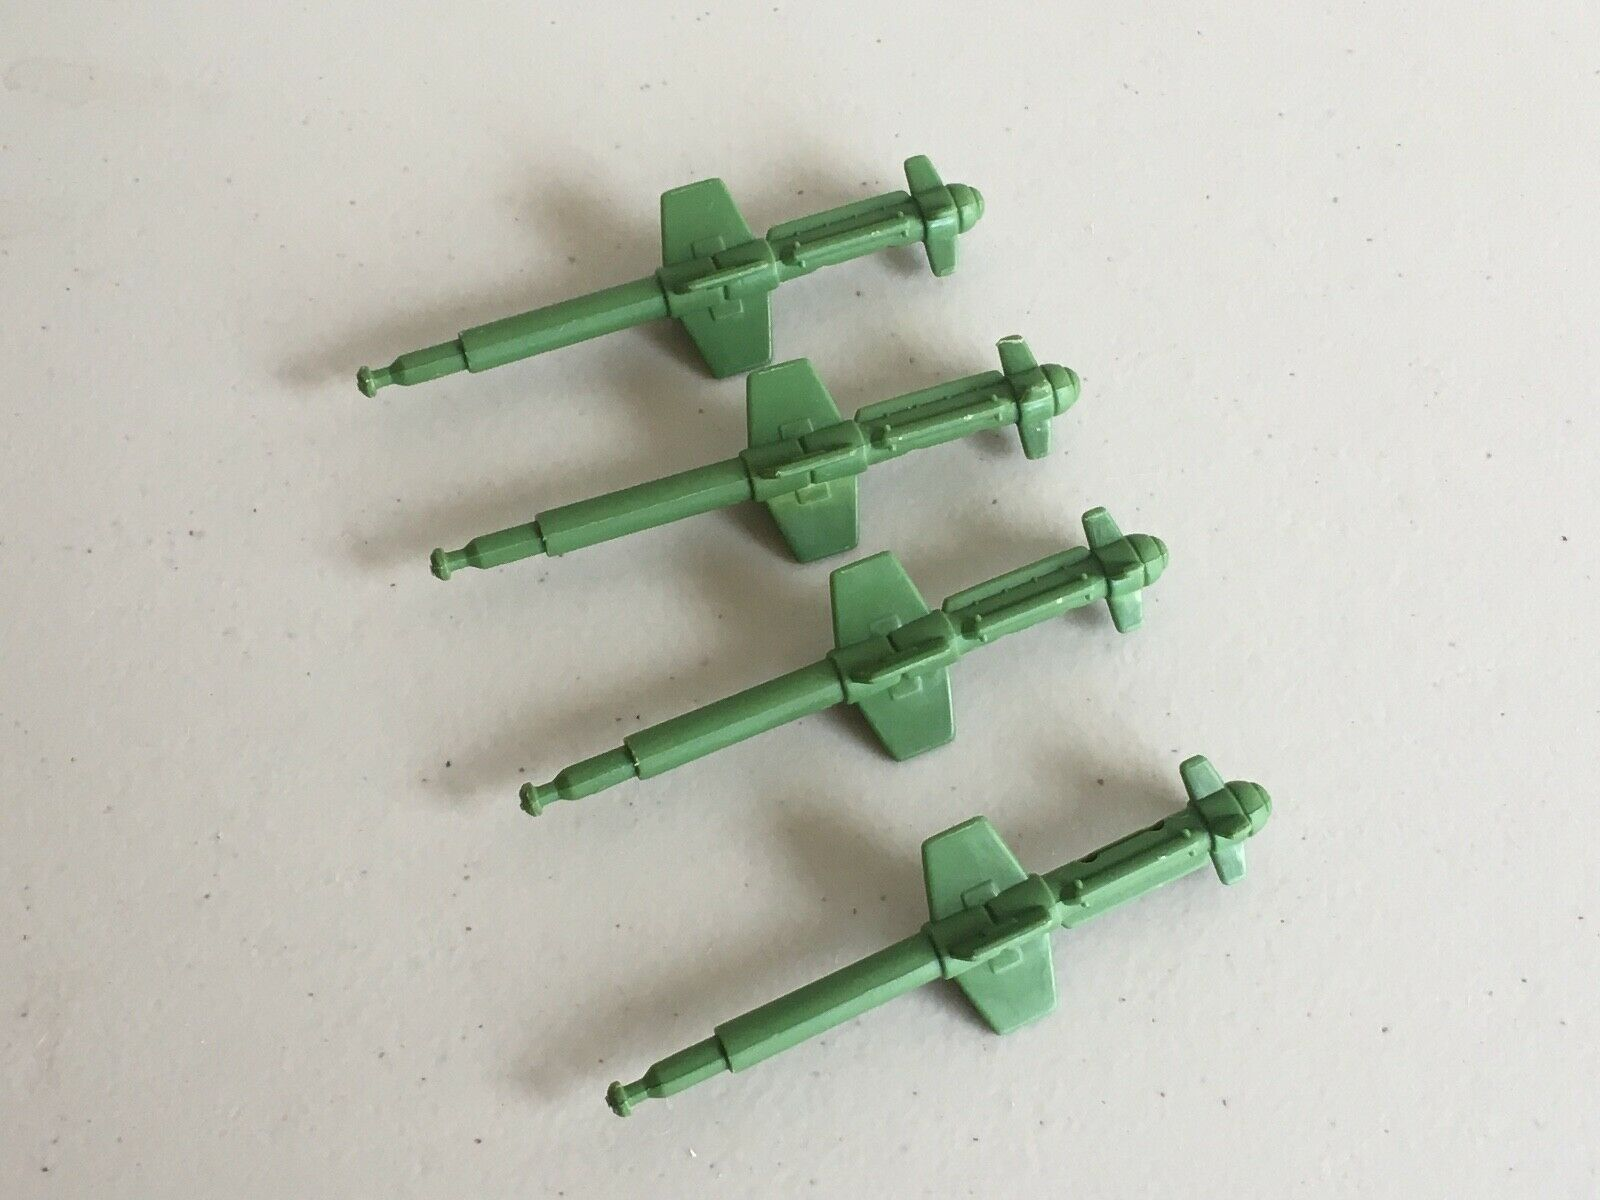 Vintage 1980's Hasbro G.I. G.I. G.I. Joe Vehicle Guns Weapons Missiles Parts & Accessories 45d40a